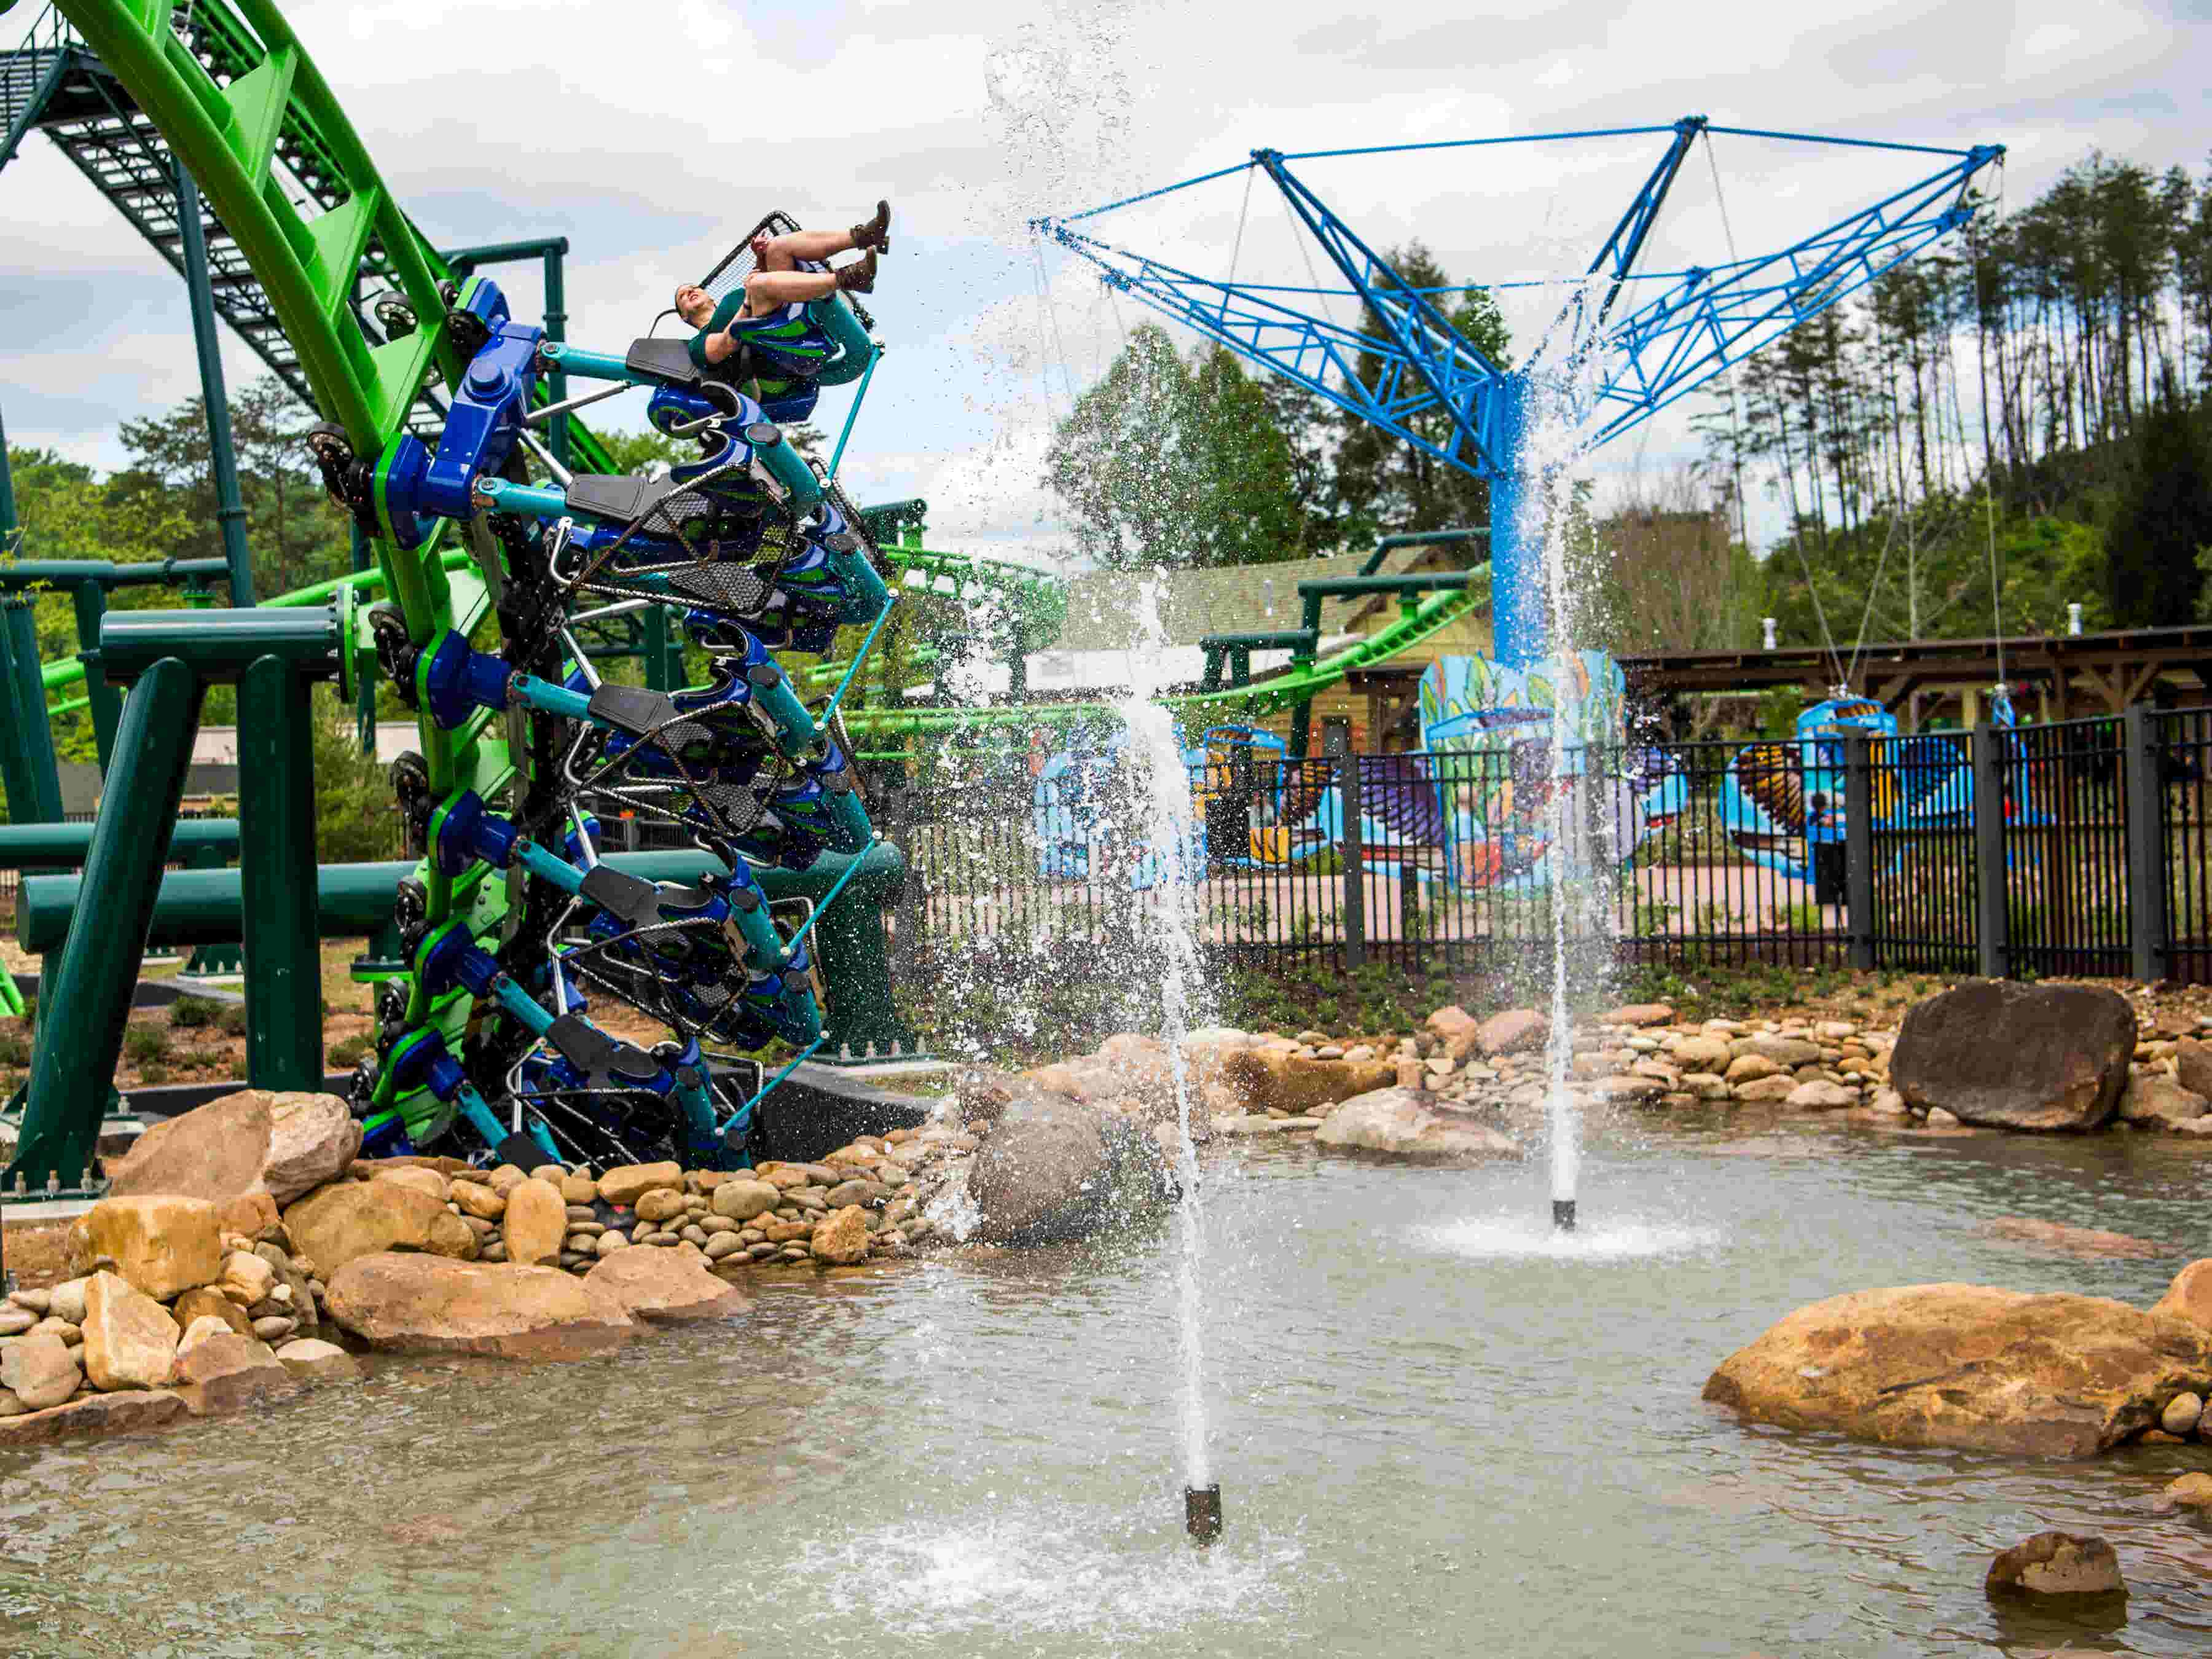 Take a look inside Dollywood's new Wildwood Grove expansion